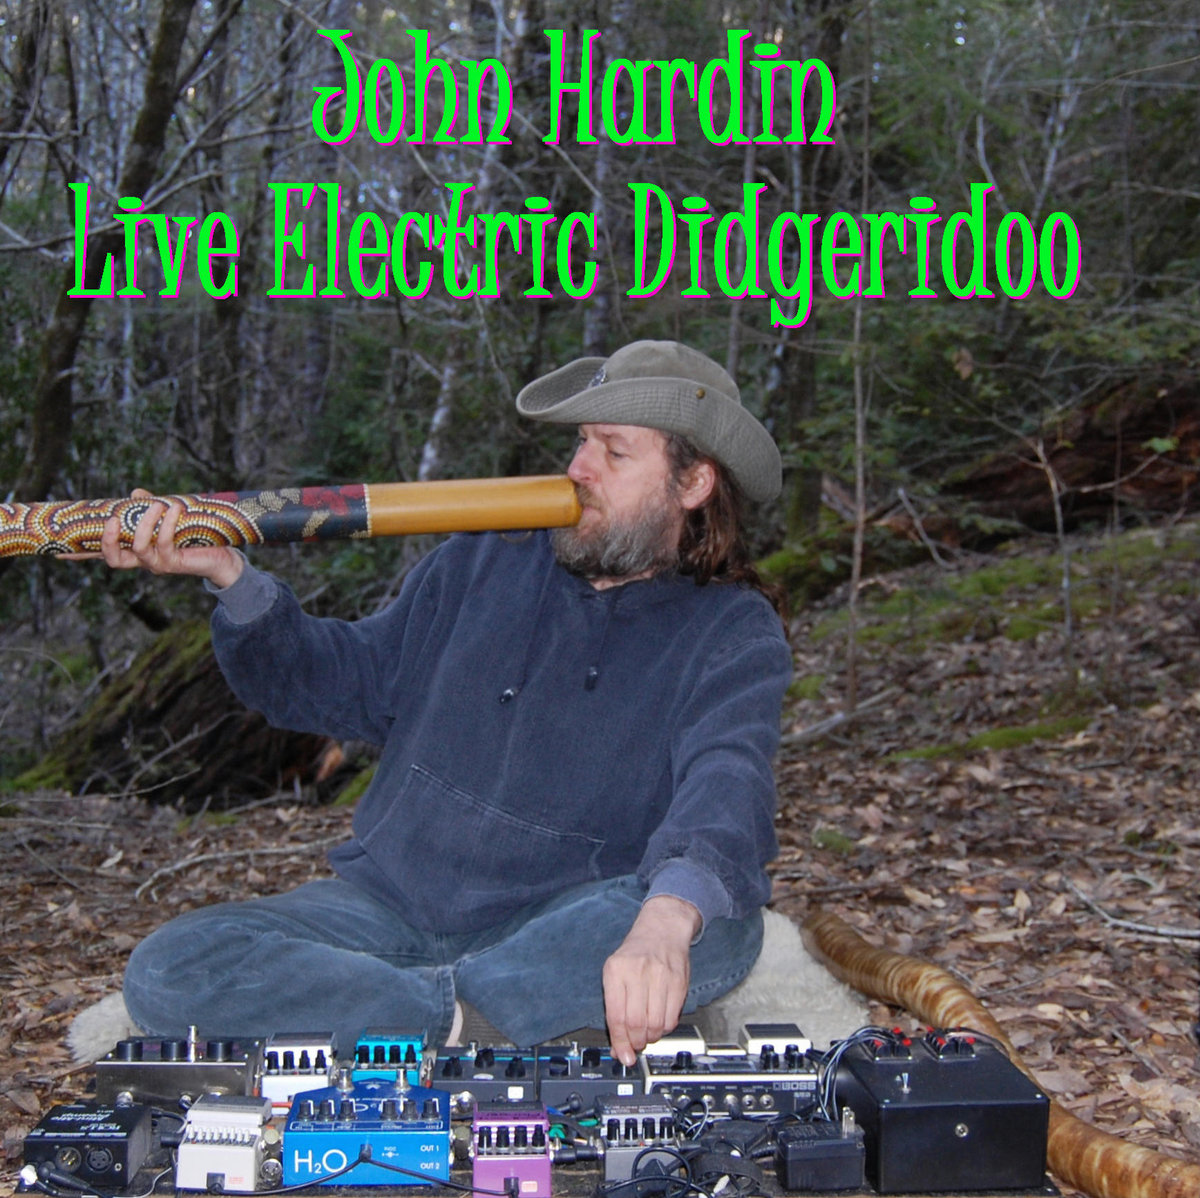 John Hardin Live Electric Didgeridoo